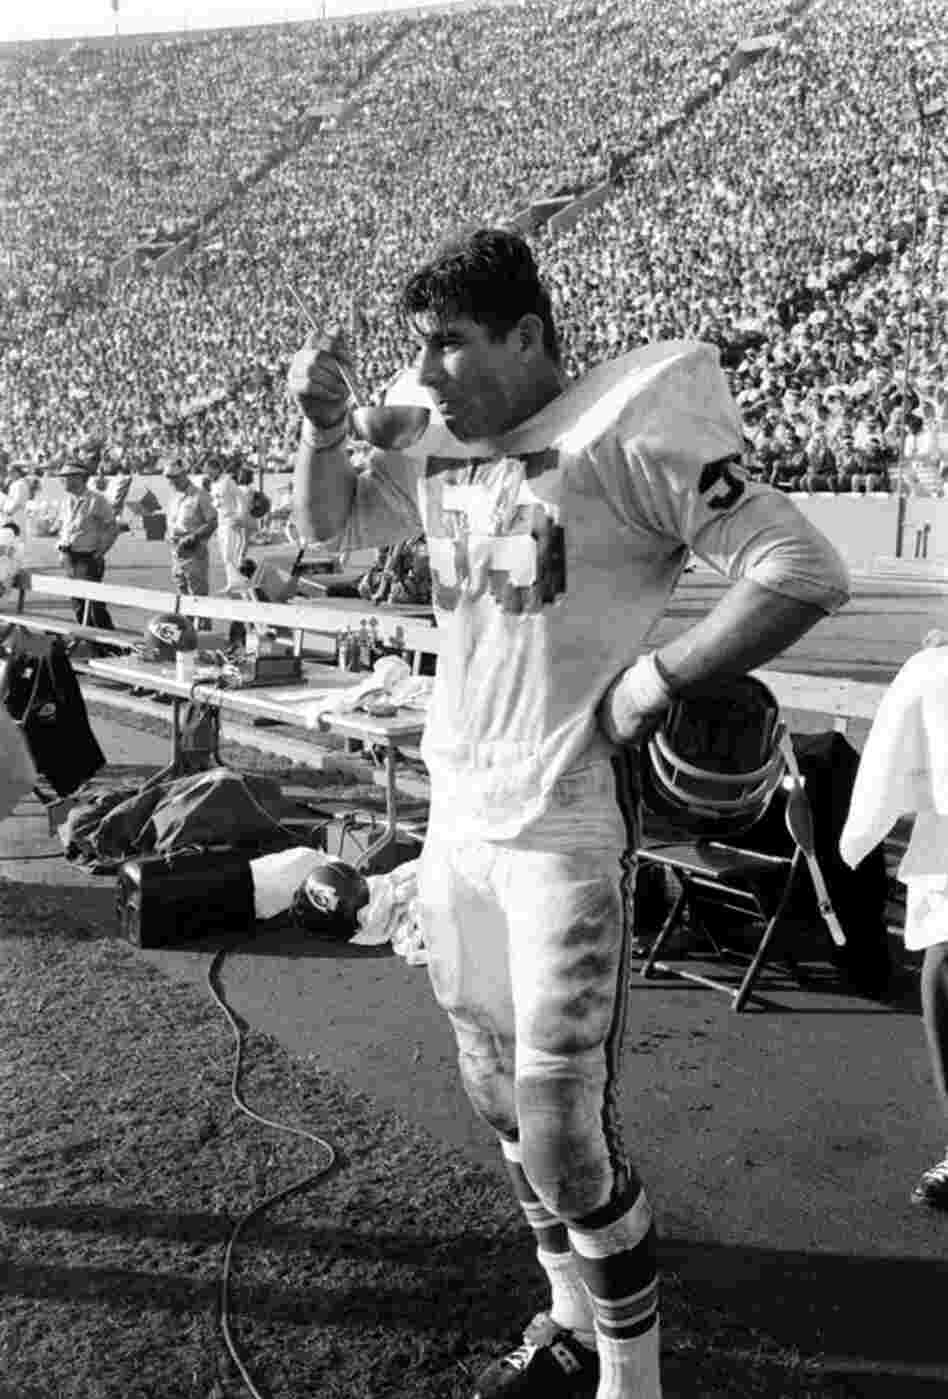 Chiefs linebacker E.J. Holub, drinking from what looks to be a ladle.